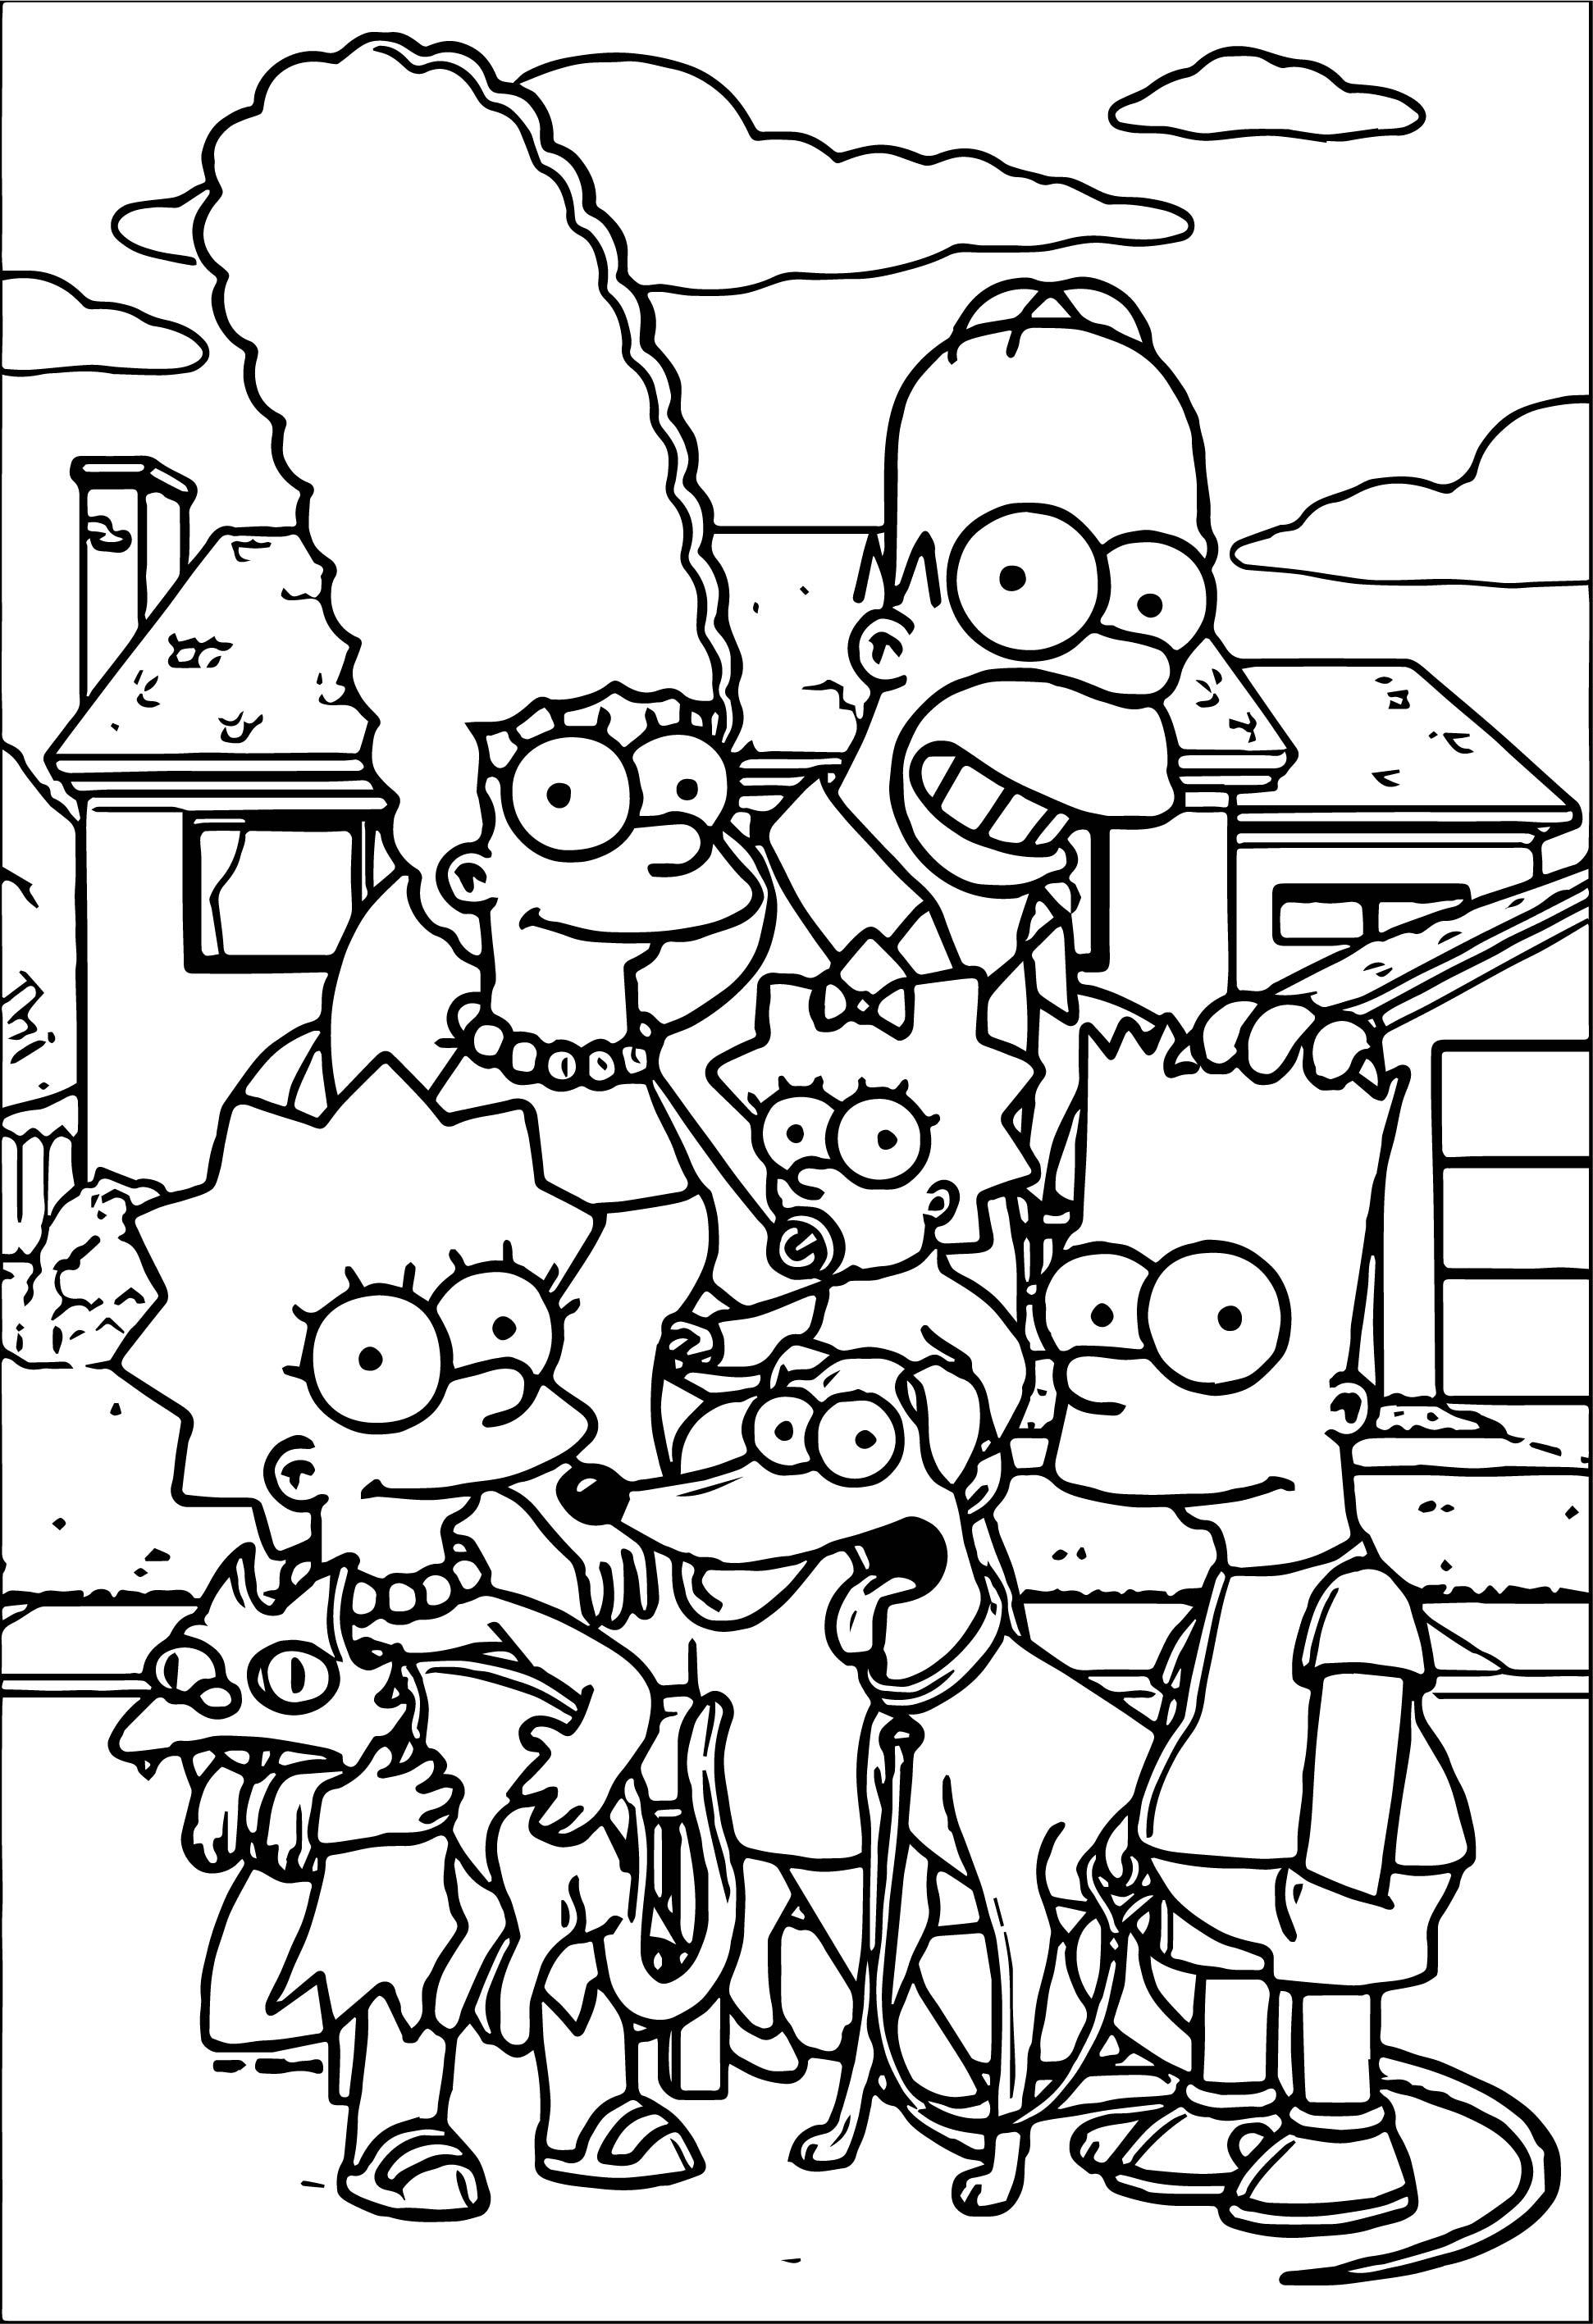 Simpsons family at street coloring page for Coloring pages simpsons